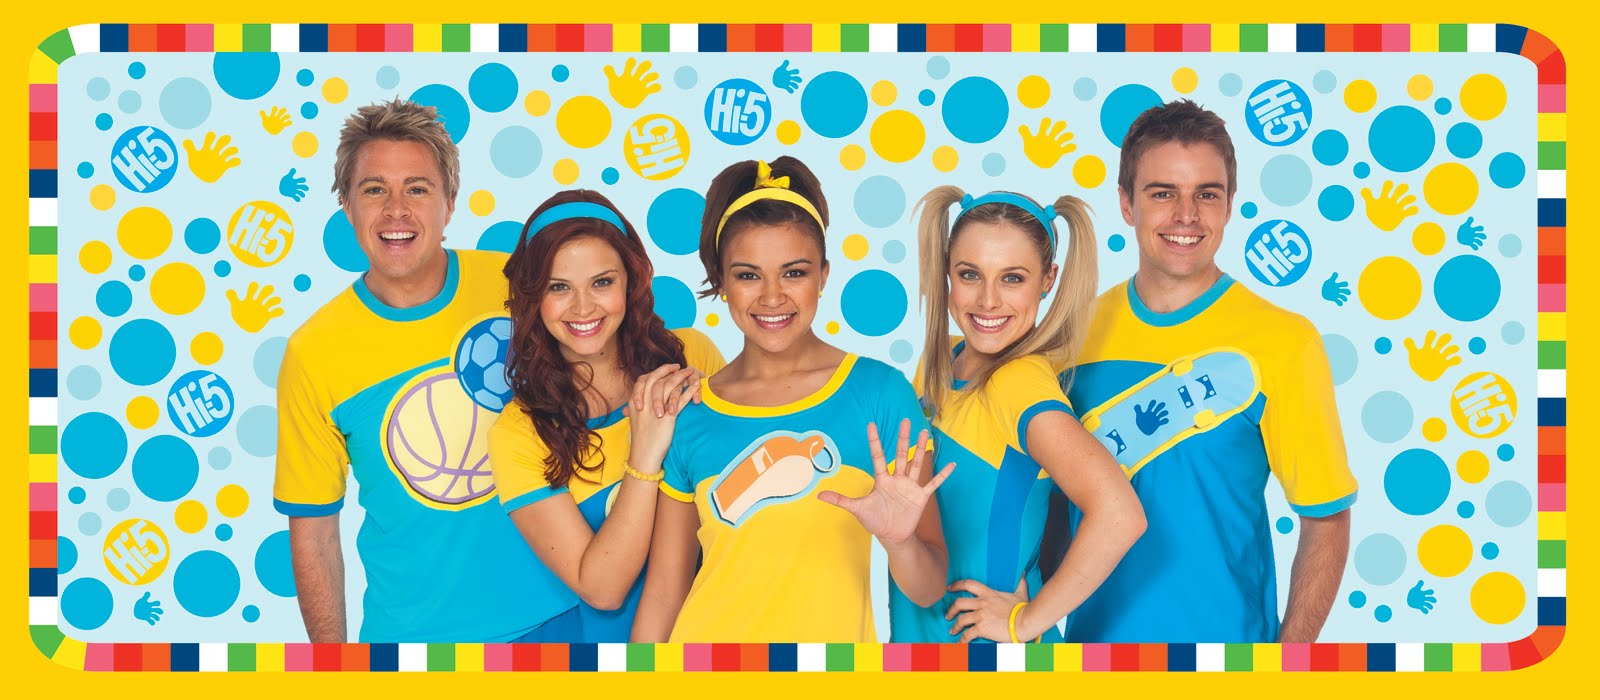 Hi5 dating australia